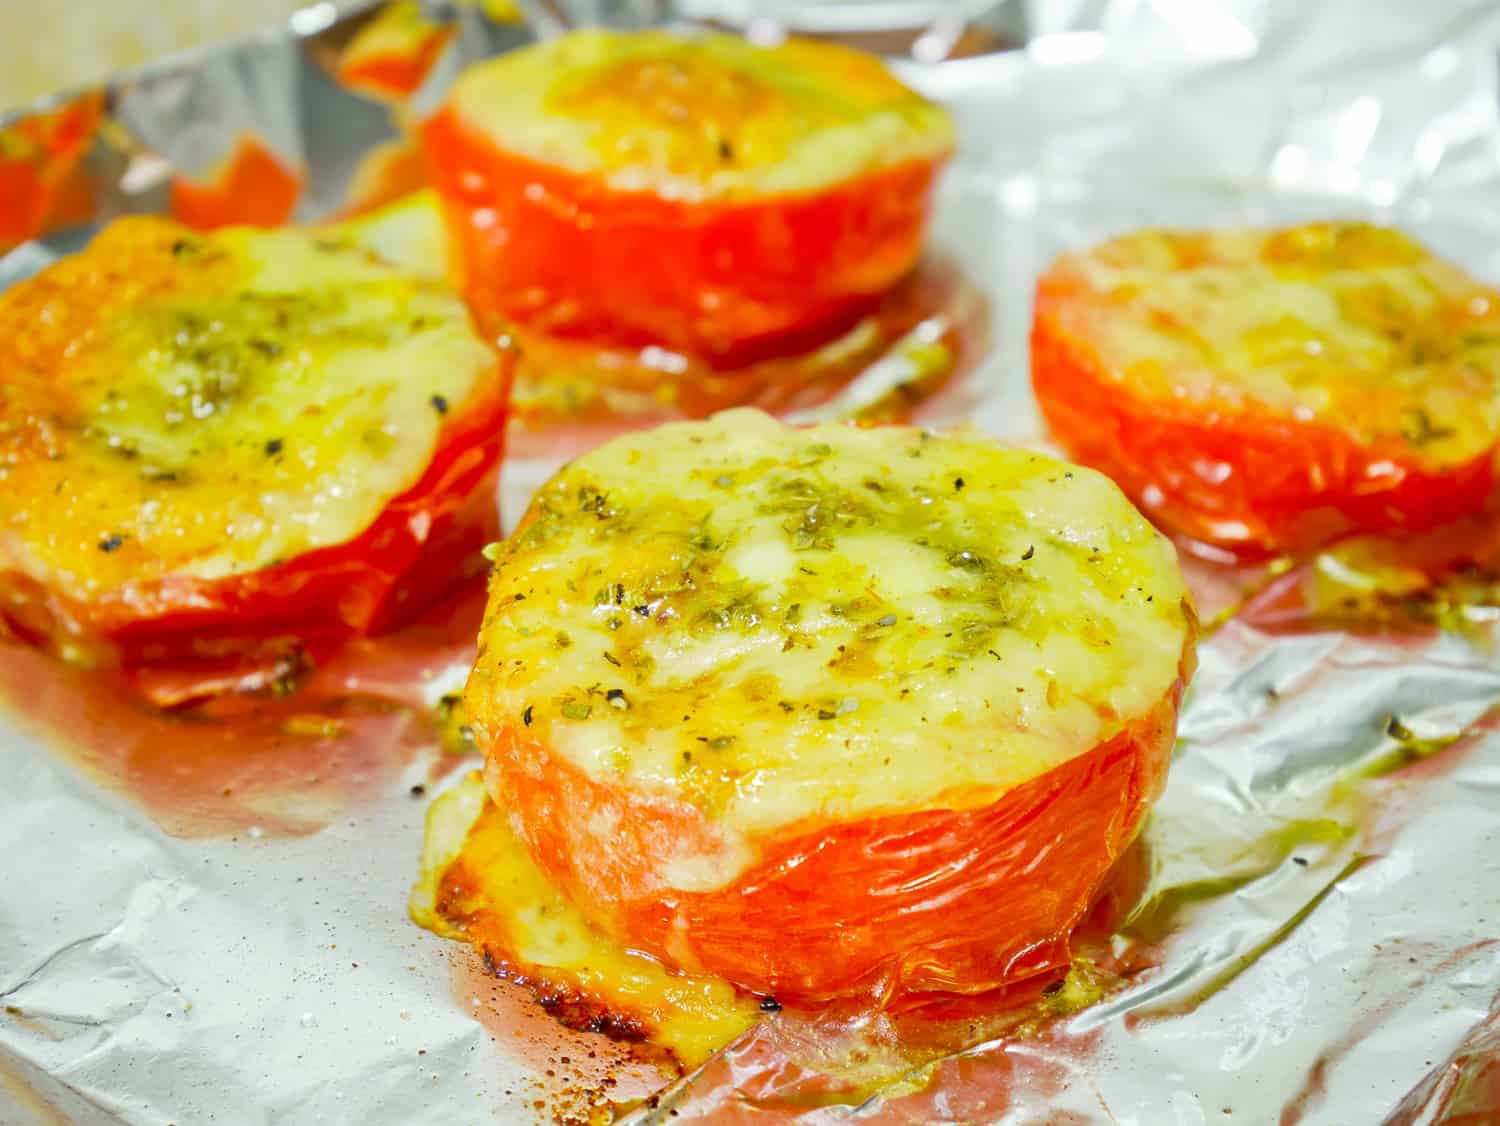 Roasted tomatoes with mozzarella cheese on aluminium foil in oven